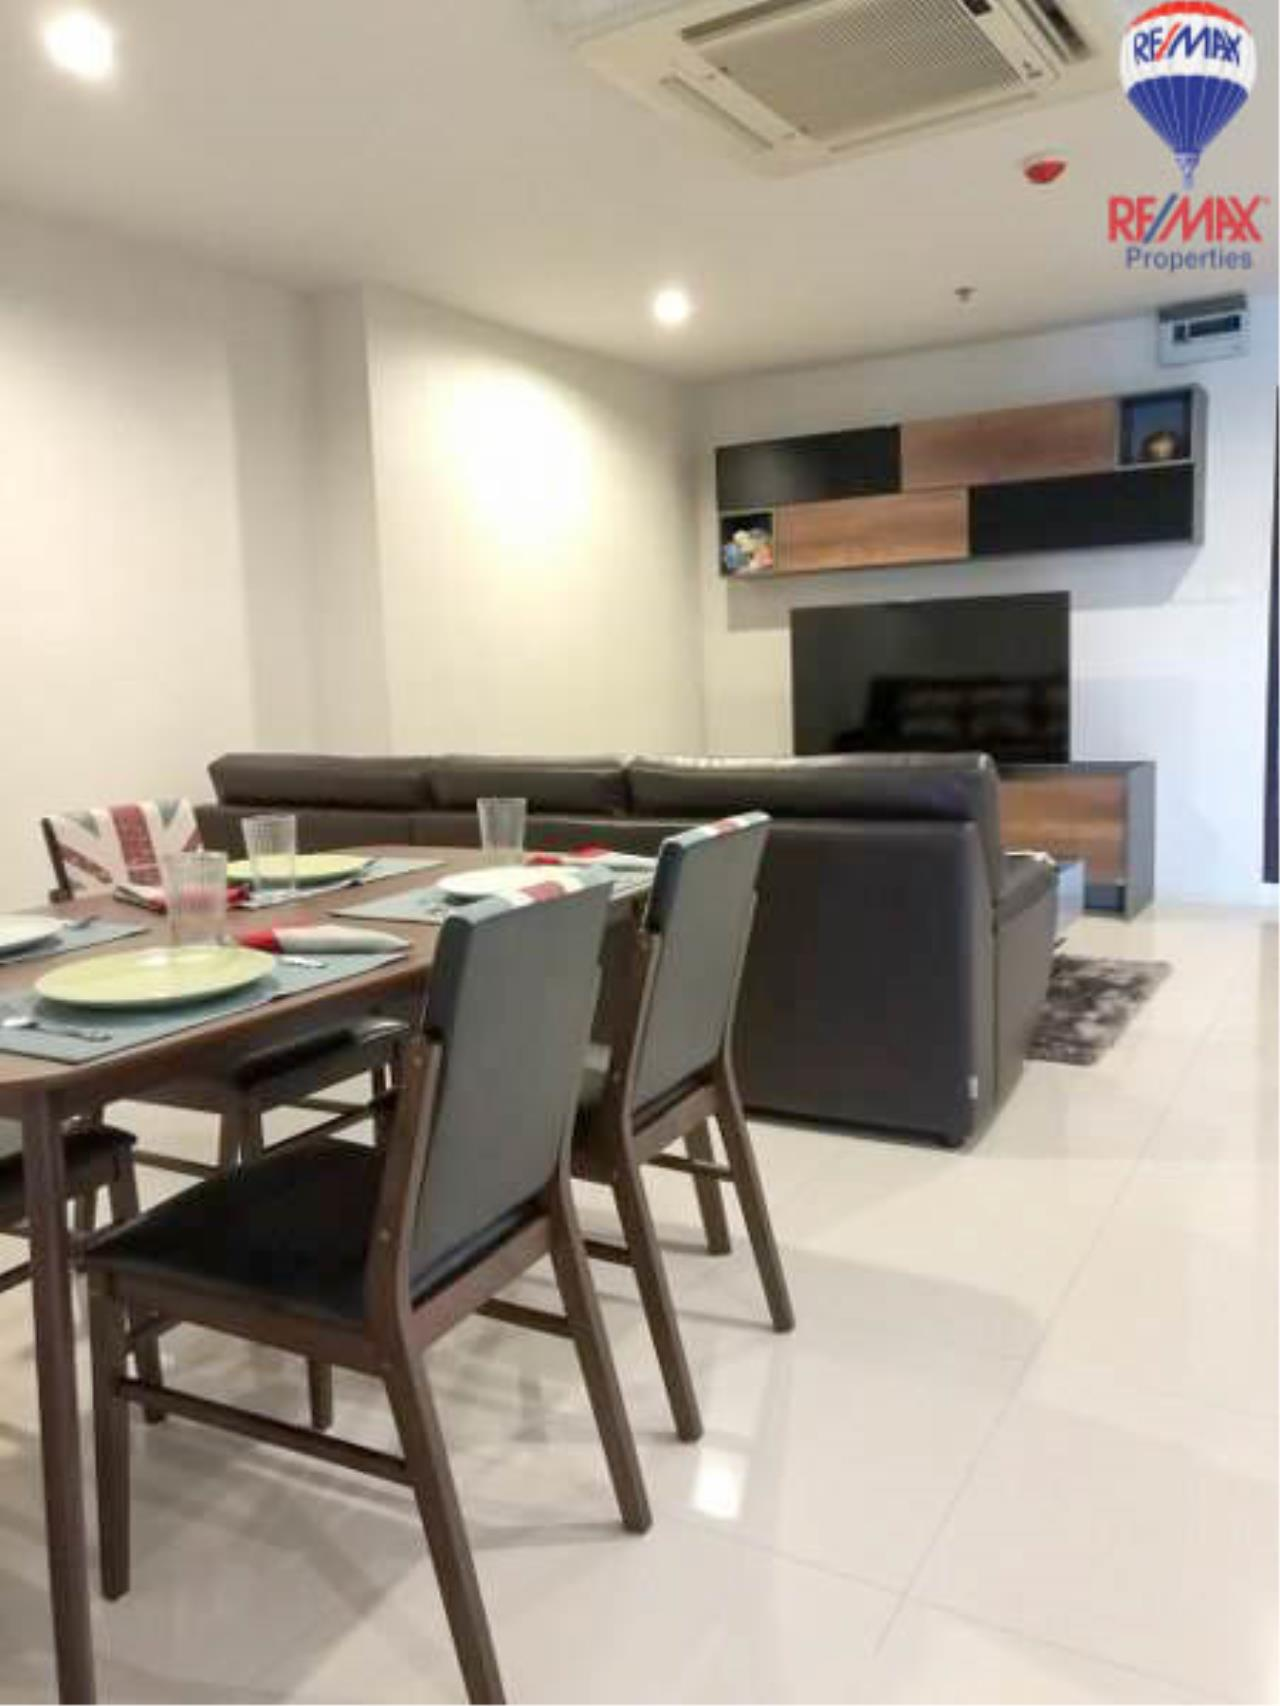 RE/MAX Properties Agency's 1 Bedroom 60 Sq.M. for sale in Sukhumvit Living Town 3